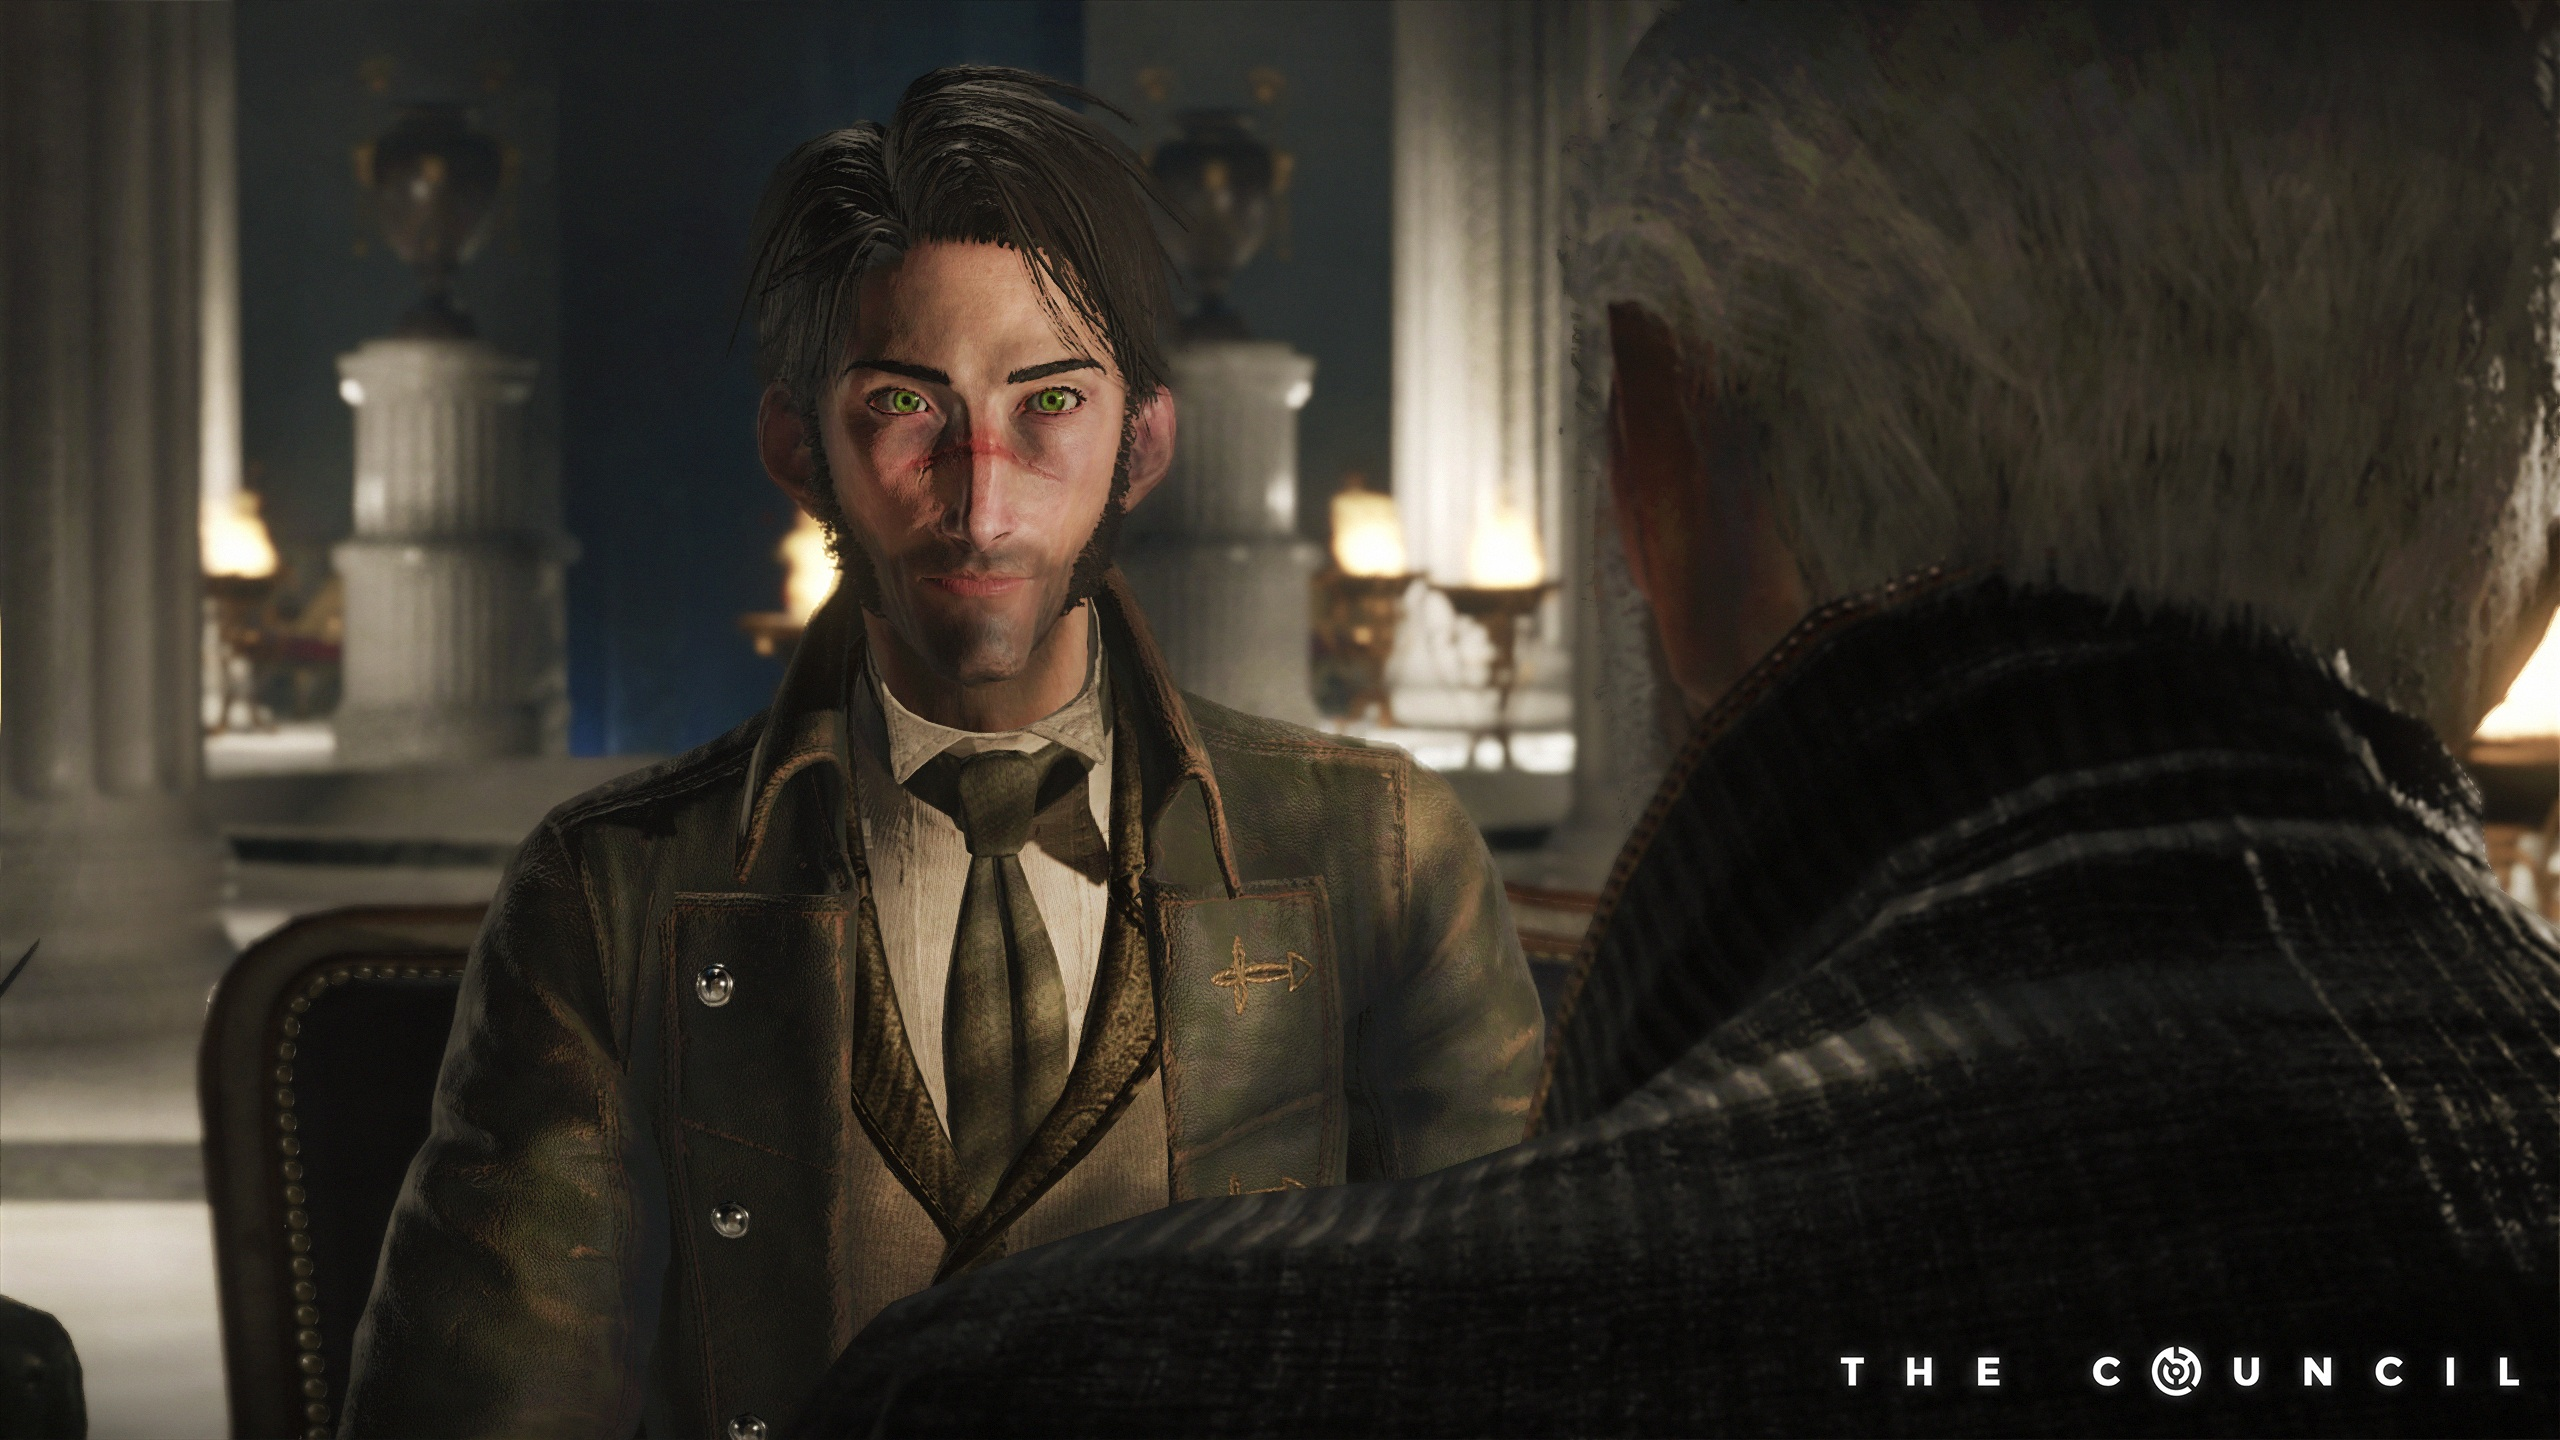 The Council - Episode Two: Hide & Seek Review